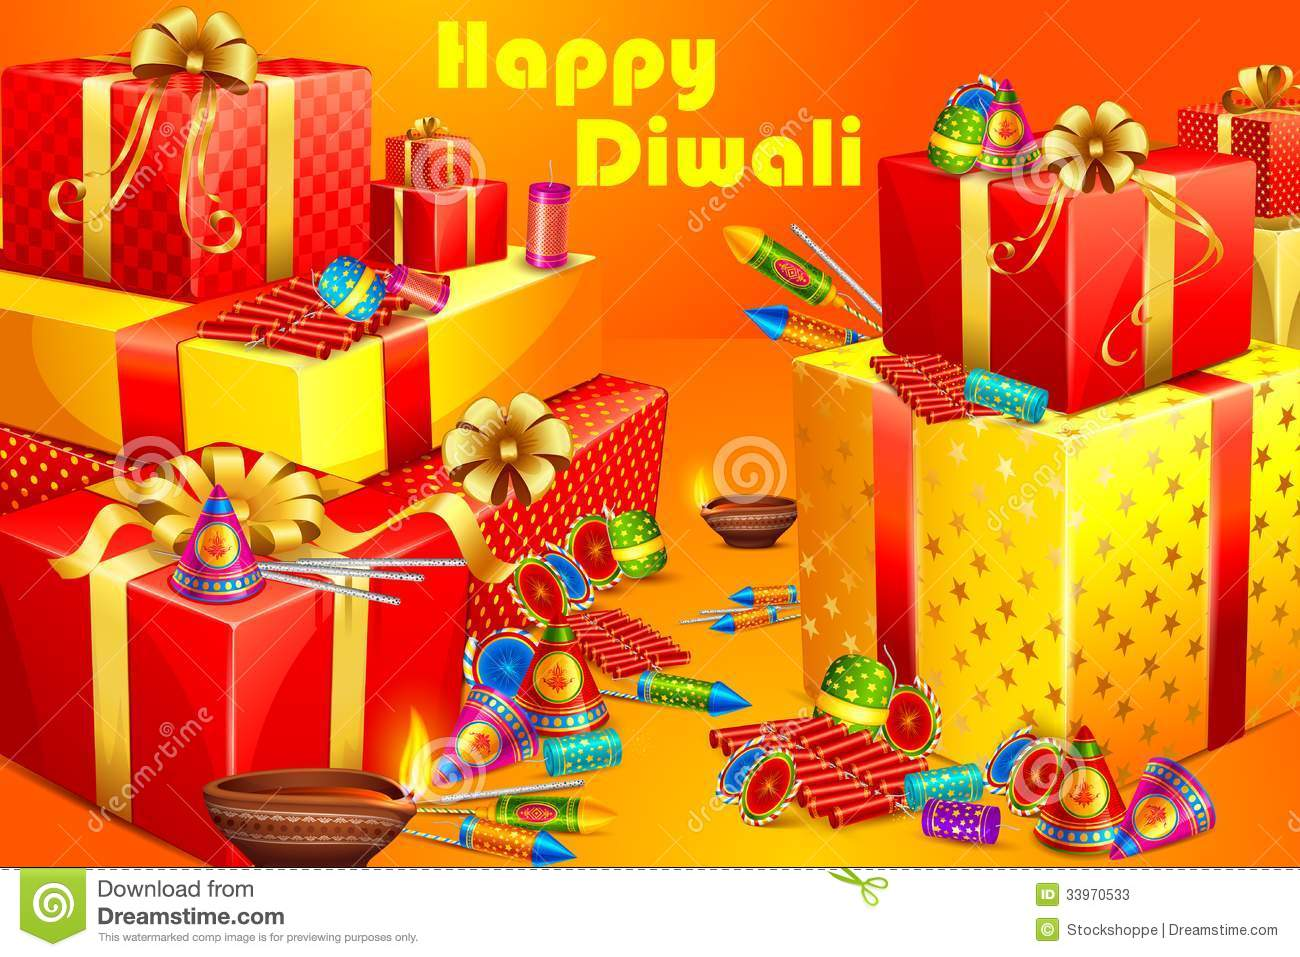 Diwali gift stock photos image 33970533 royalty free stock photo download diwali gift negle